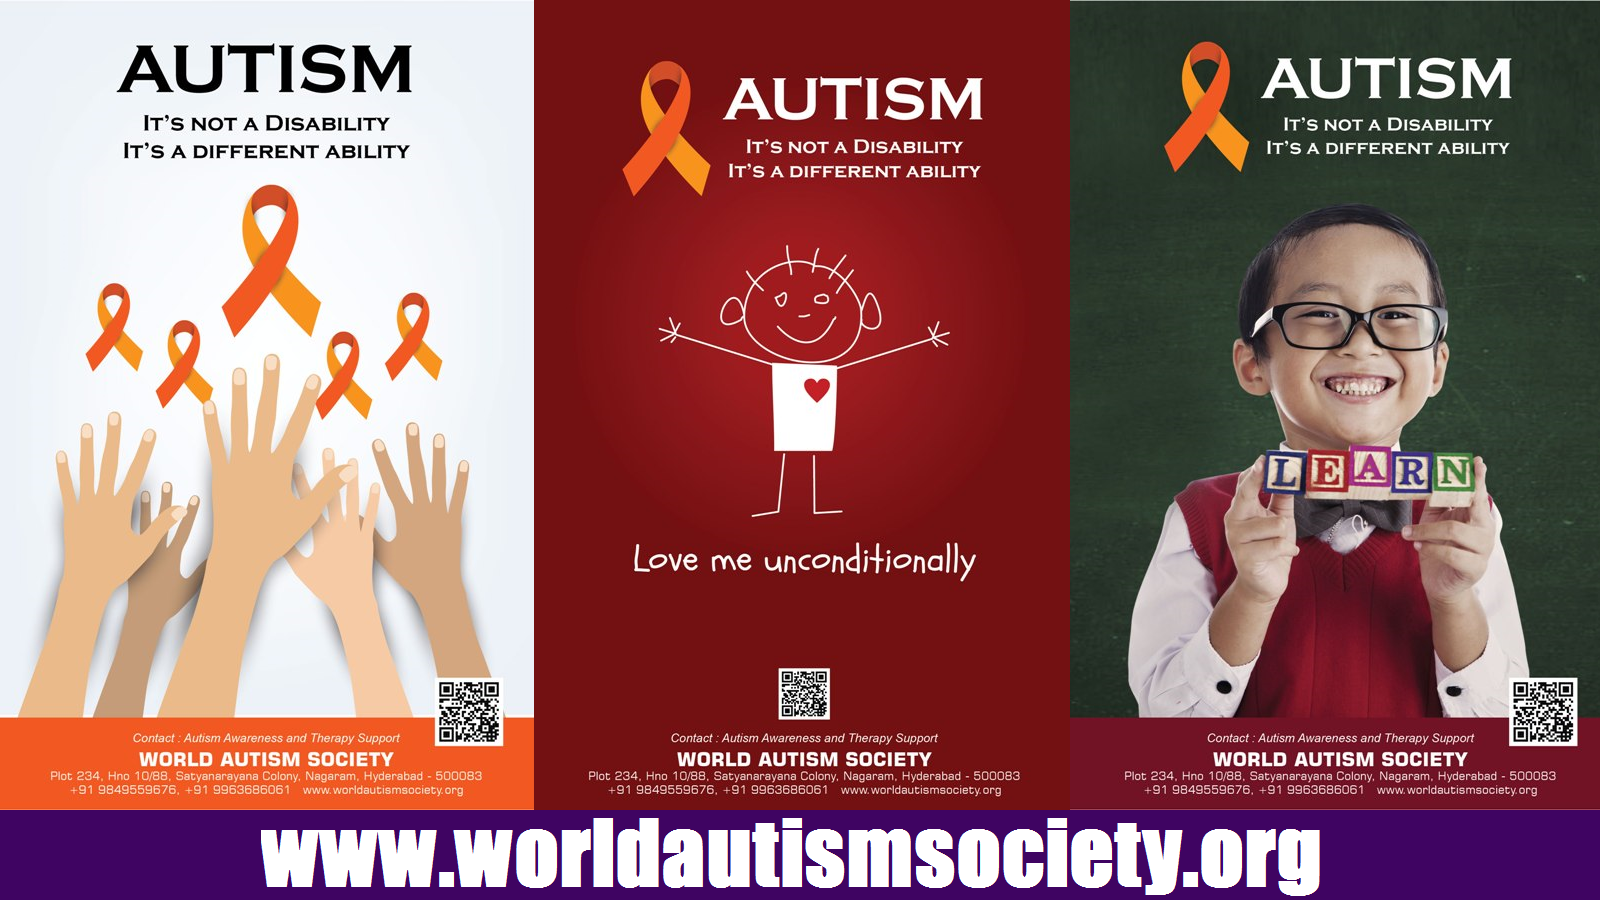 World Autism Society - 2nd April World Autism Awareness Day - Autism Movie